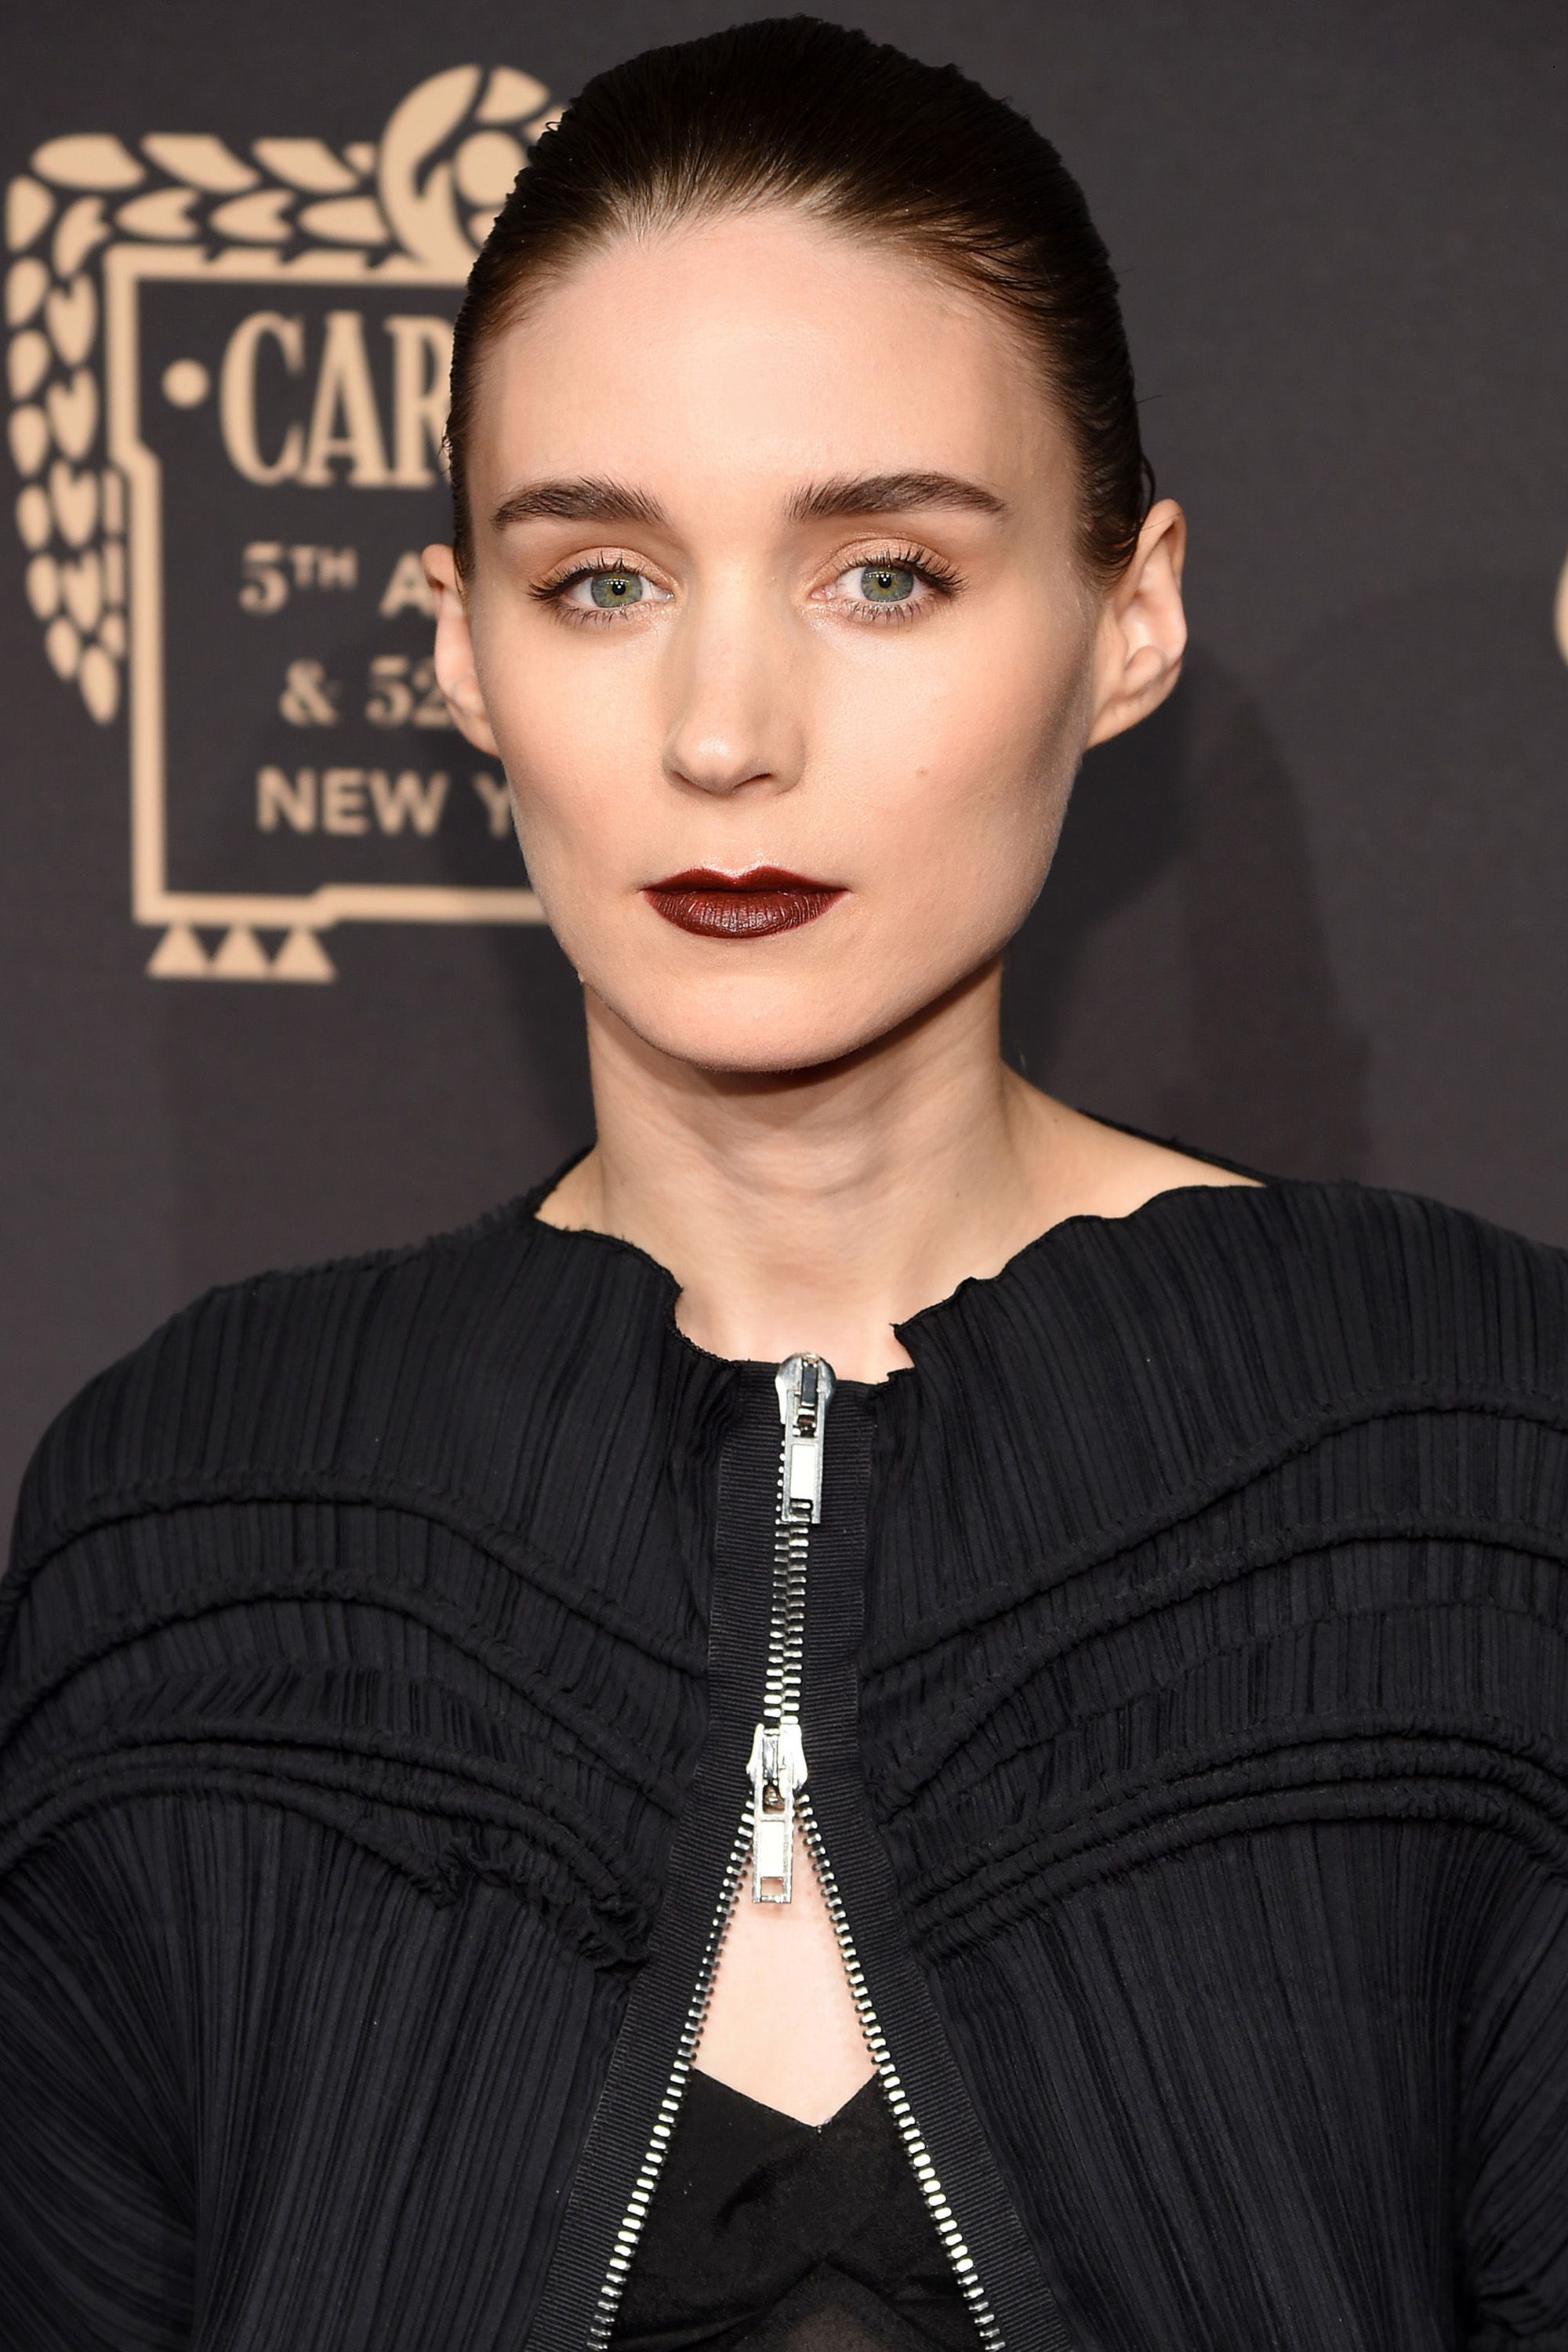 "<p><strong data-redactor-tag=""strong"">Who:</strong> Rooney Mara</p><p><strong data-redactor-tag=""strong"">What: </strong>That Dreamy '90s Lip</p><p><strong data-redactor-tag=""strong"">Why: </strong>For a Cartier event last night, makeup artist Kate Lee gave the actress an, ""alabaster complexion, apricot eyes and a 90s-inspired lip."" Notice the low-key balance between a sheer gilded wash on the lids and the earthy, purpley brick on the lips. </p><p><strong data-redactor-tag=""strong"">Editor's Pick: </strong><strong data-redactor-tag=""strong"">Urban Decay </strong><span class=""redactor-invisible-space"" data-verified=""redactor"" data-redactor-tag=""span"" data-redactor-class=""redactor-invisible-space"">Eyeshadow in Freelove,</span> $19, <a href=""http://www.sephora.com/eyeshadow-P309813?skuId=1402908&icid2=products%20grid%3Ap309813"">sephora.com</a>.</p>"